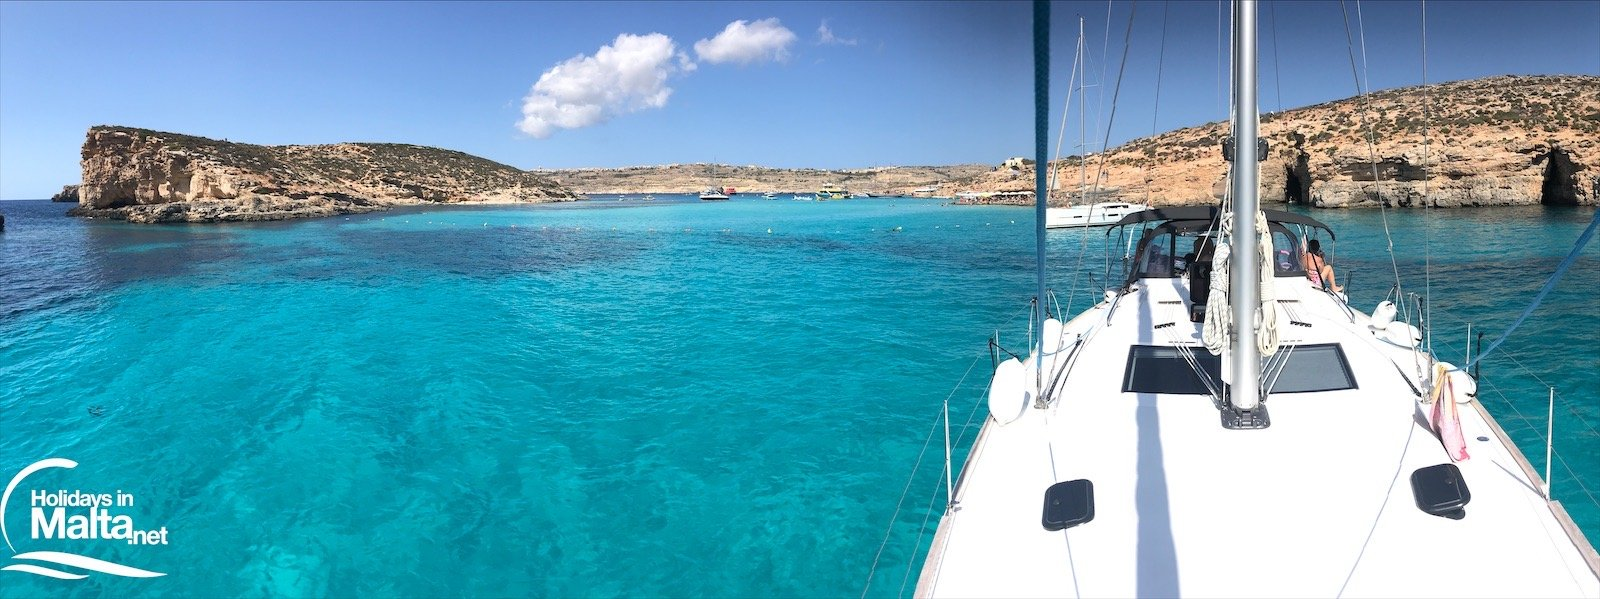 View from the boat to Blue Lagoon